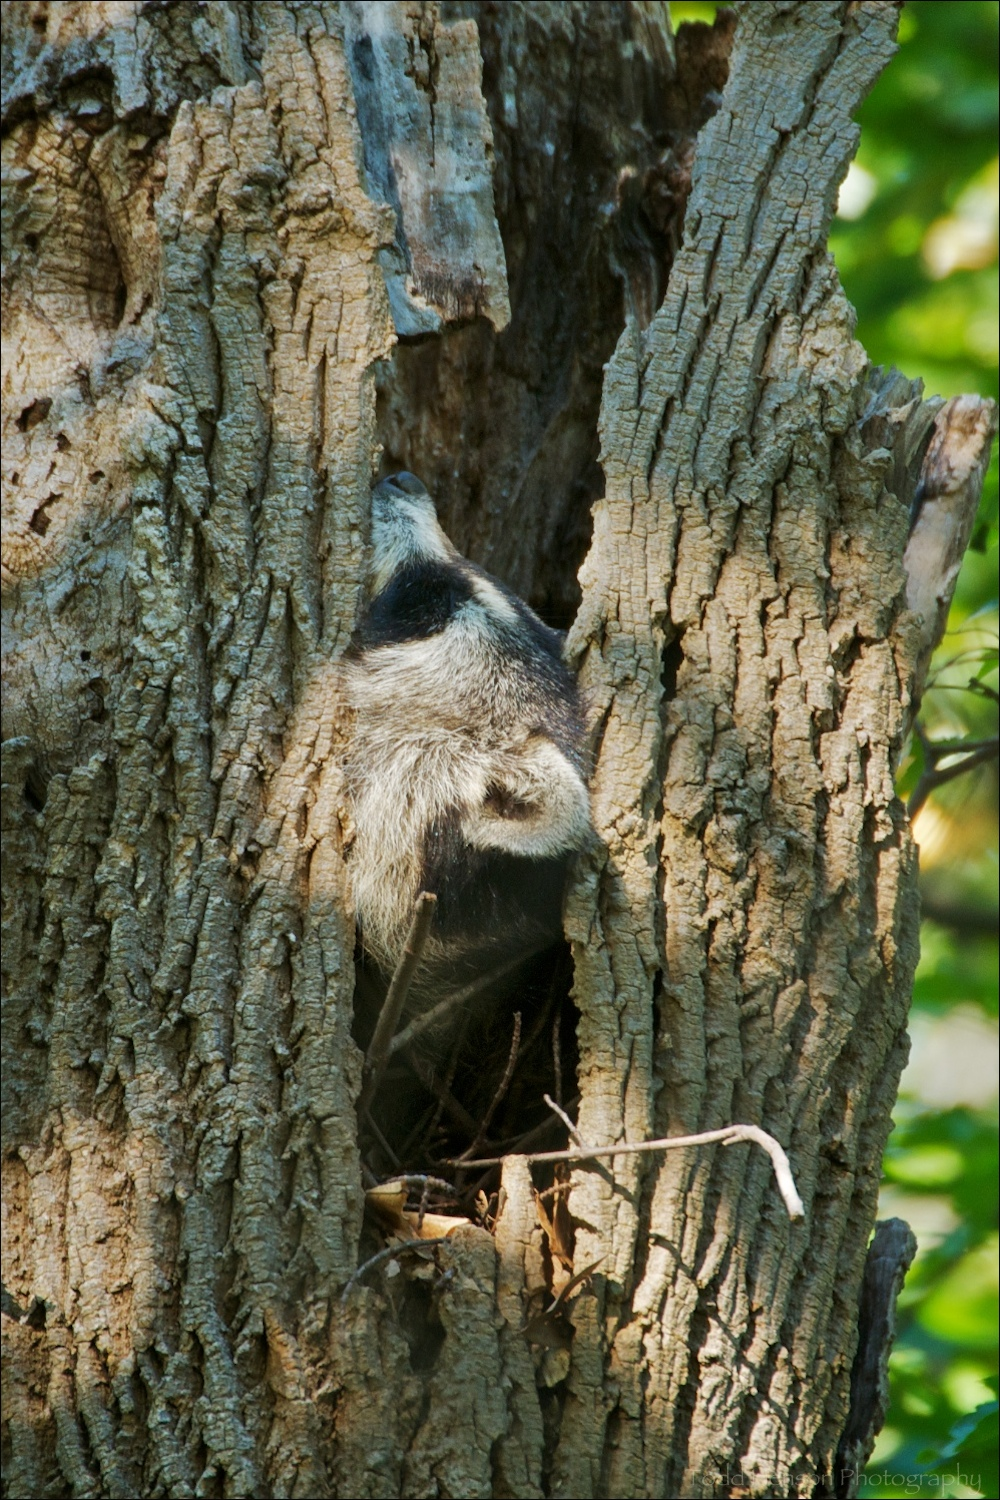 Northern Raccoon sleeping in the hollow of a tree.